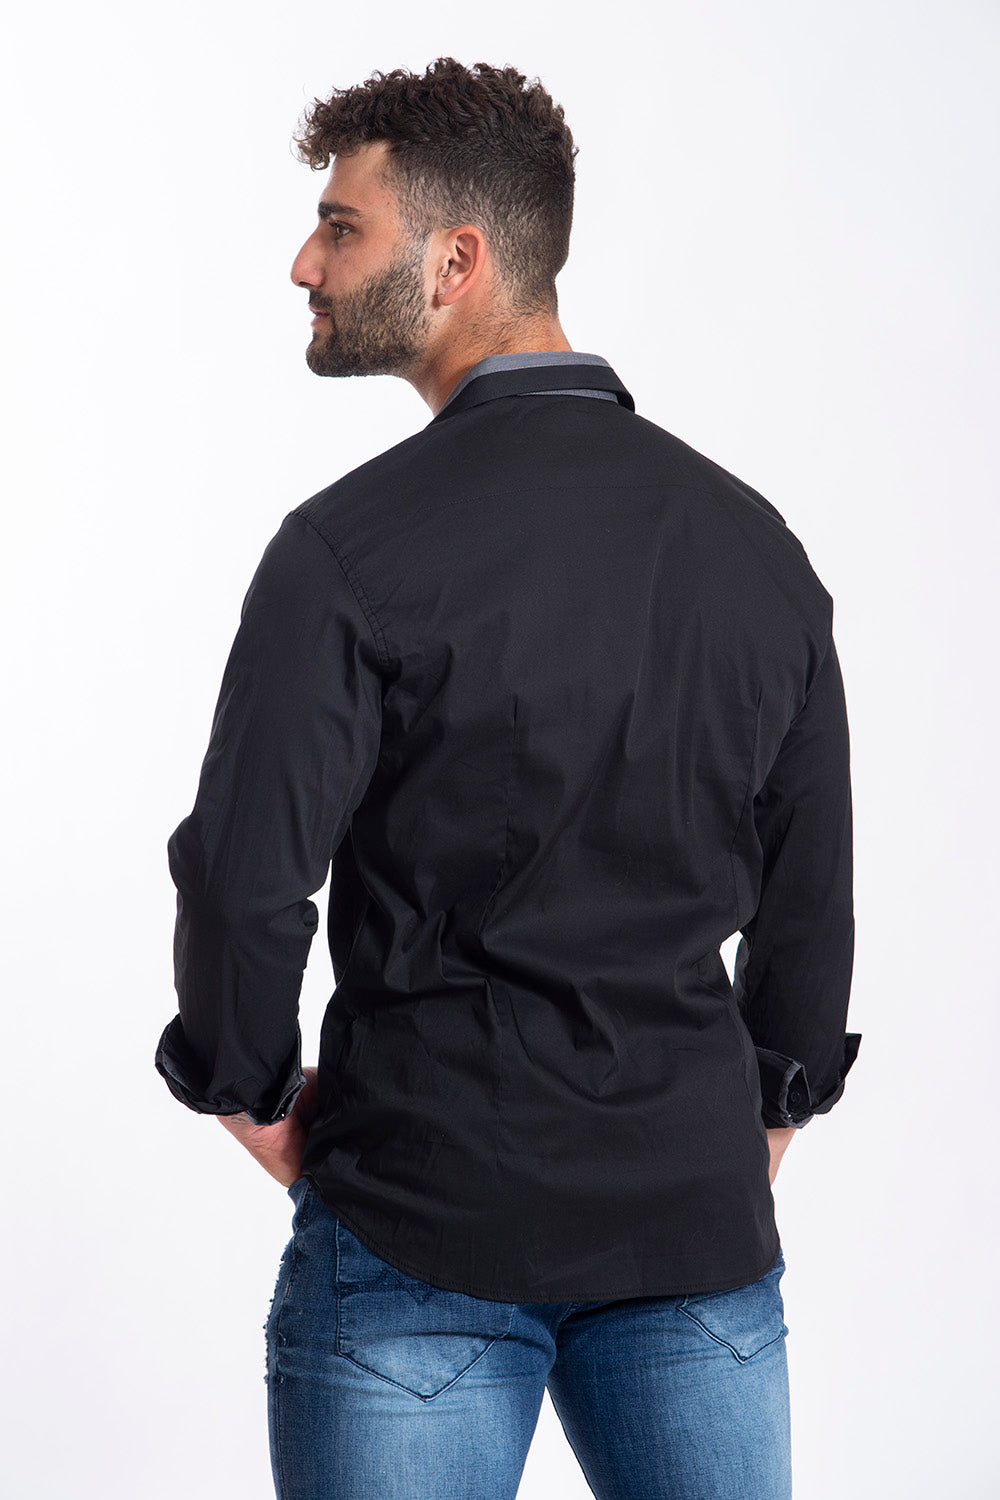 Paolo di Matteo basic black shirt with trim detail